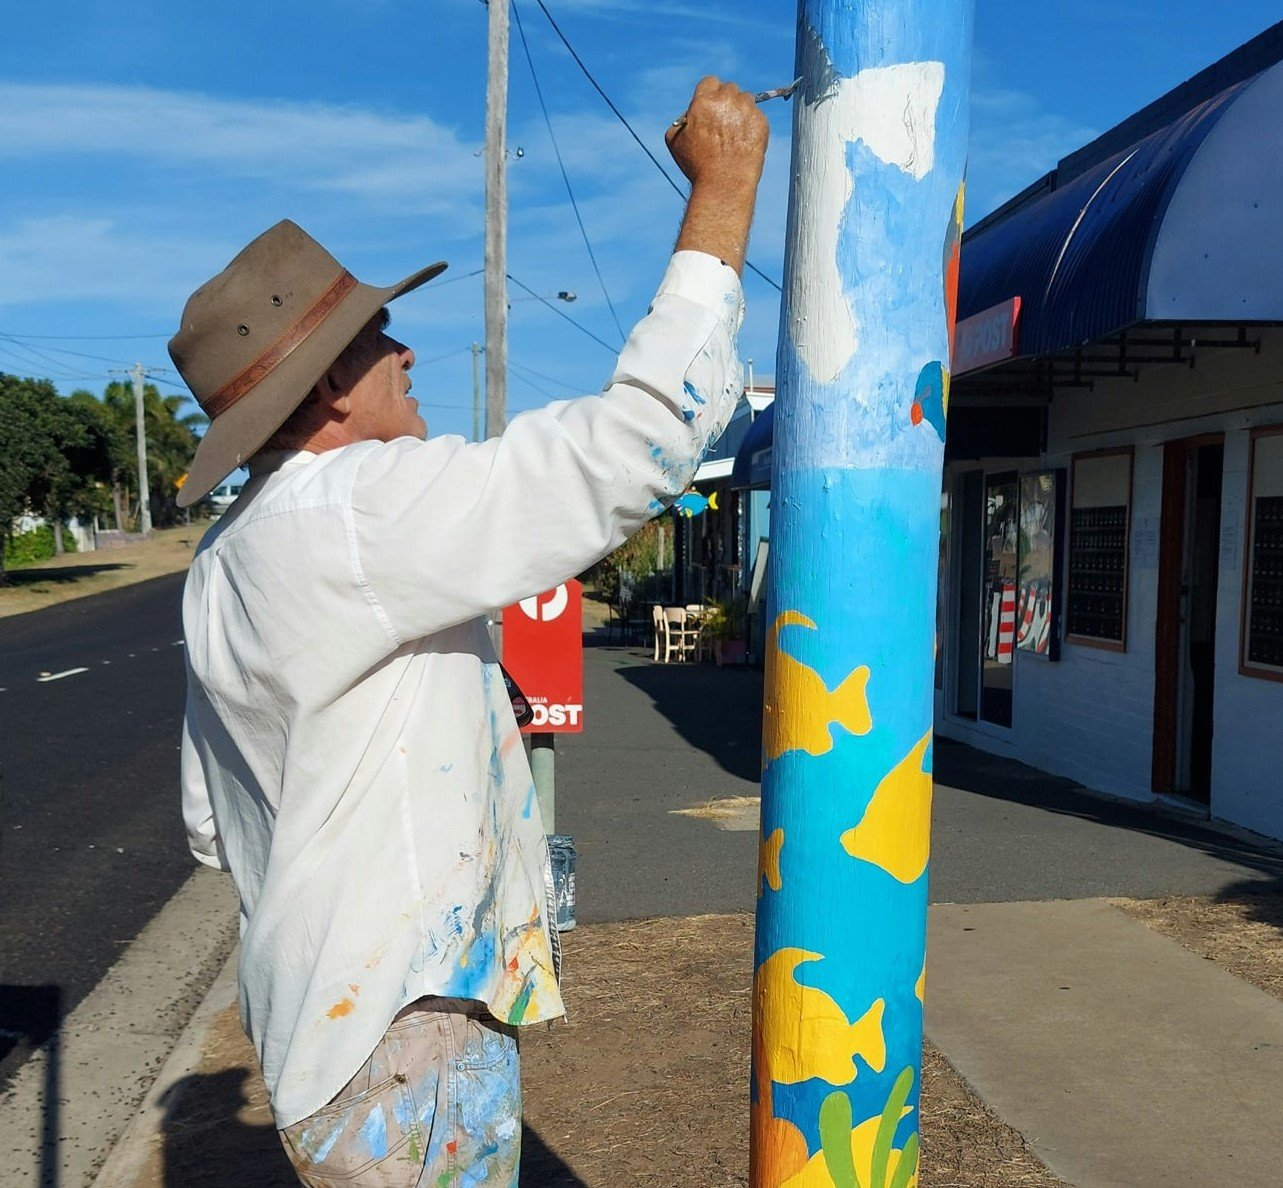 Painting street poles with colourful murals was one of the art initiatives which has helped to reinvigorate Keppel Sands.